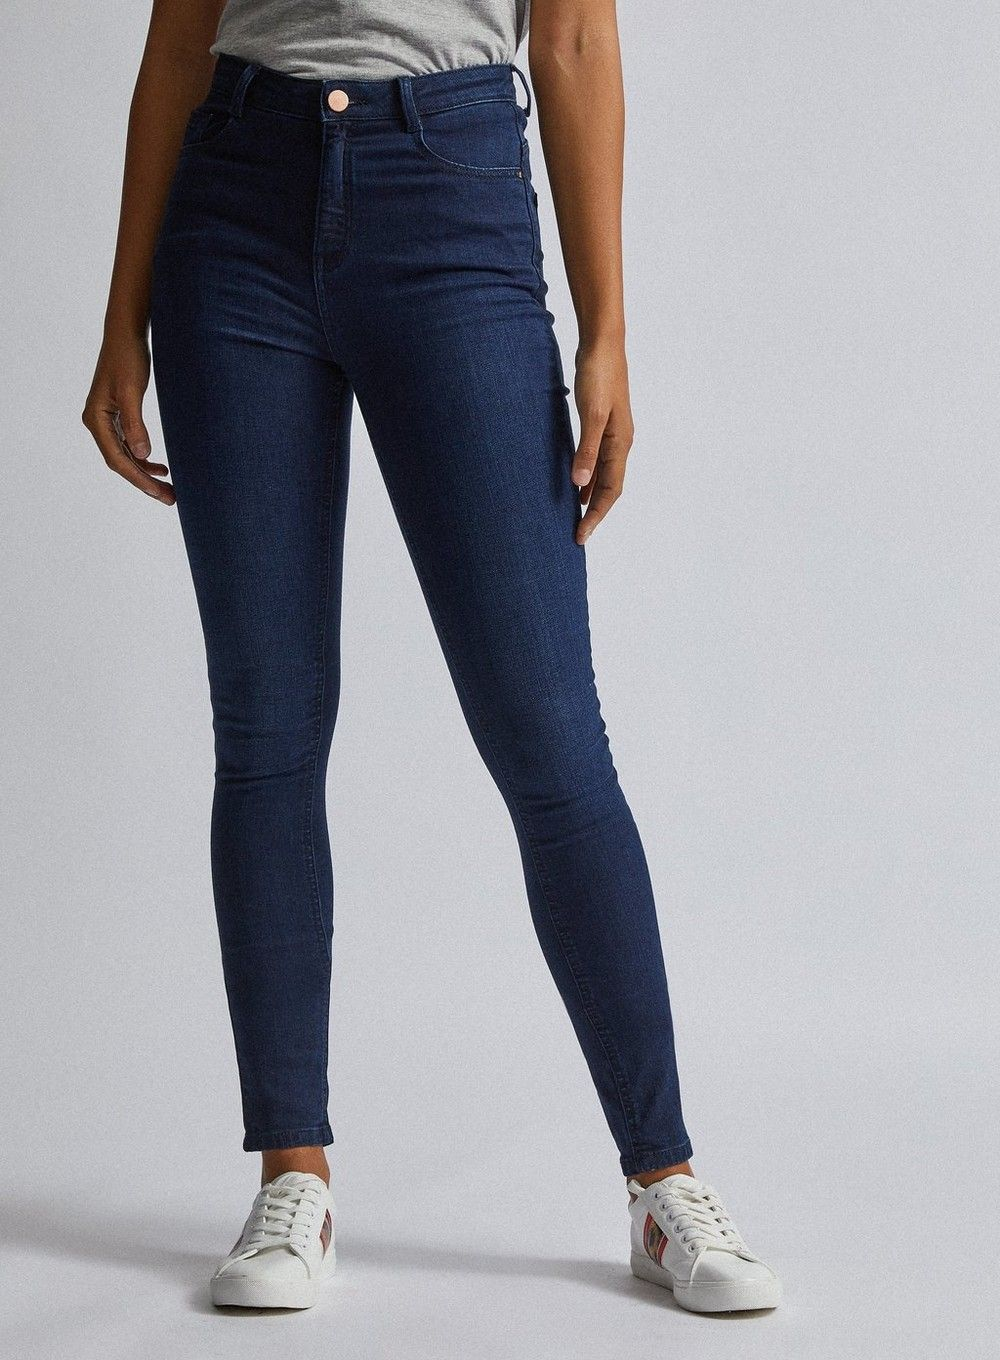 Dorothy Perkins Womens Tall Blue Shape and Lift High Rise Skinny Jeans Slimming